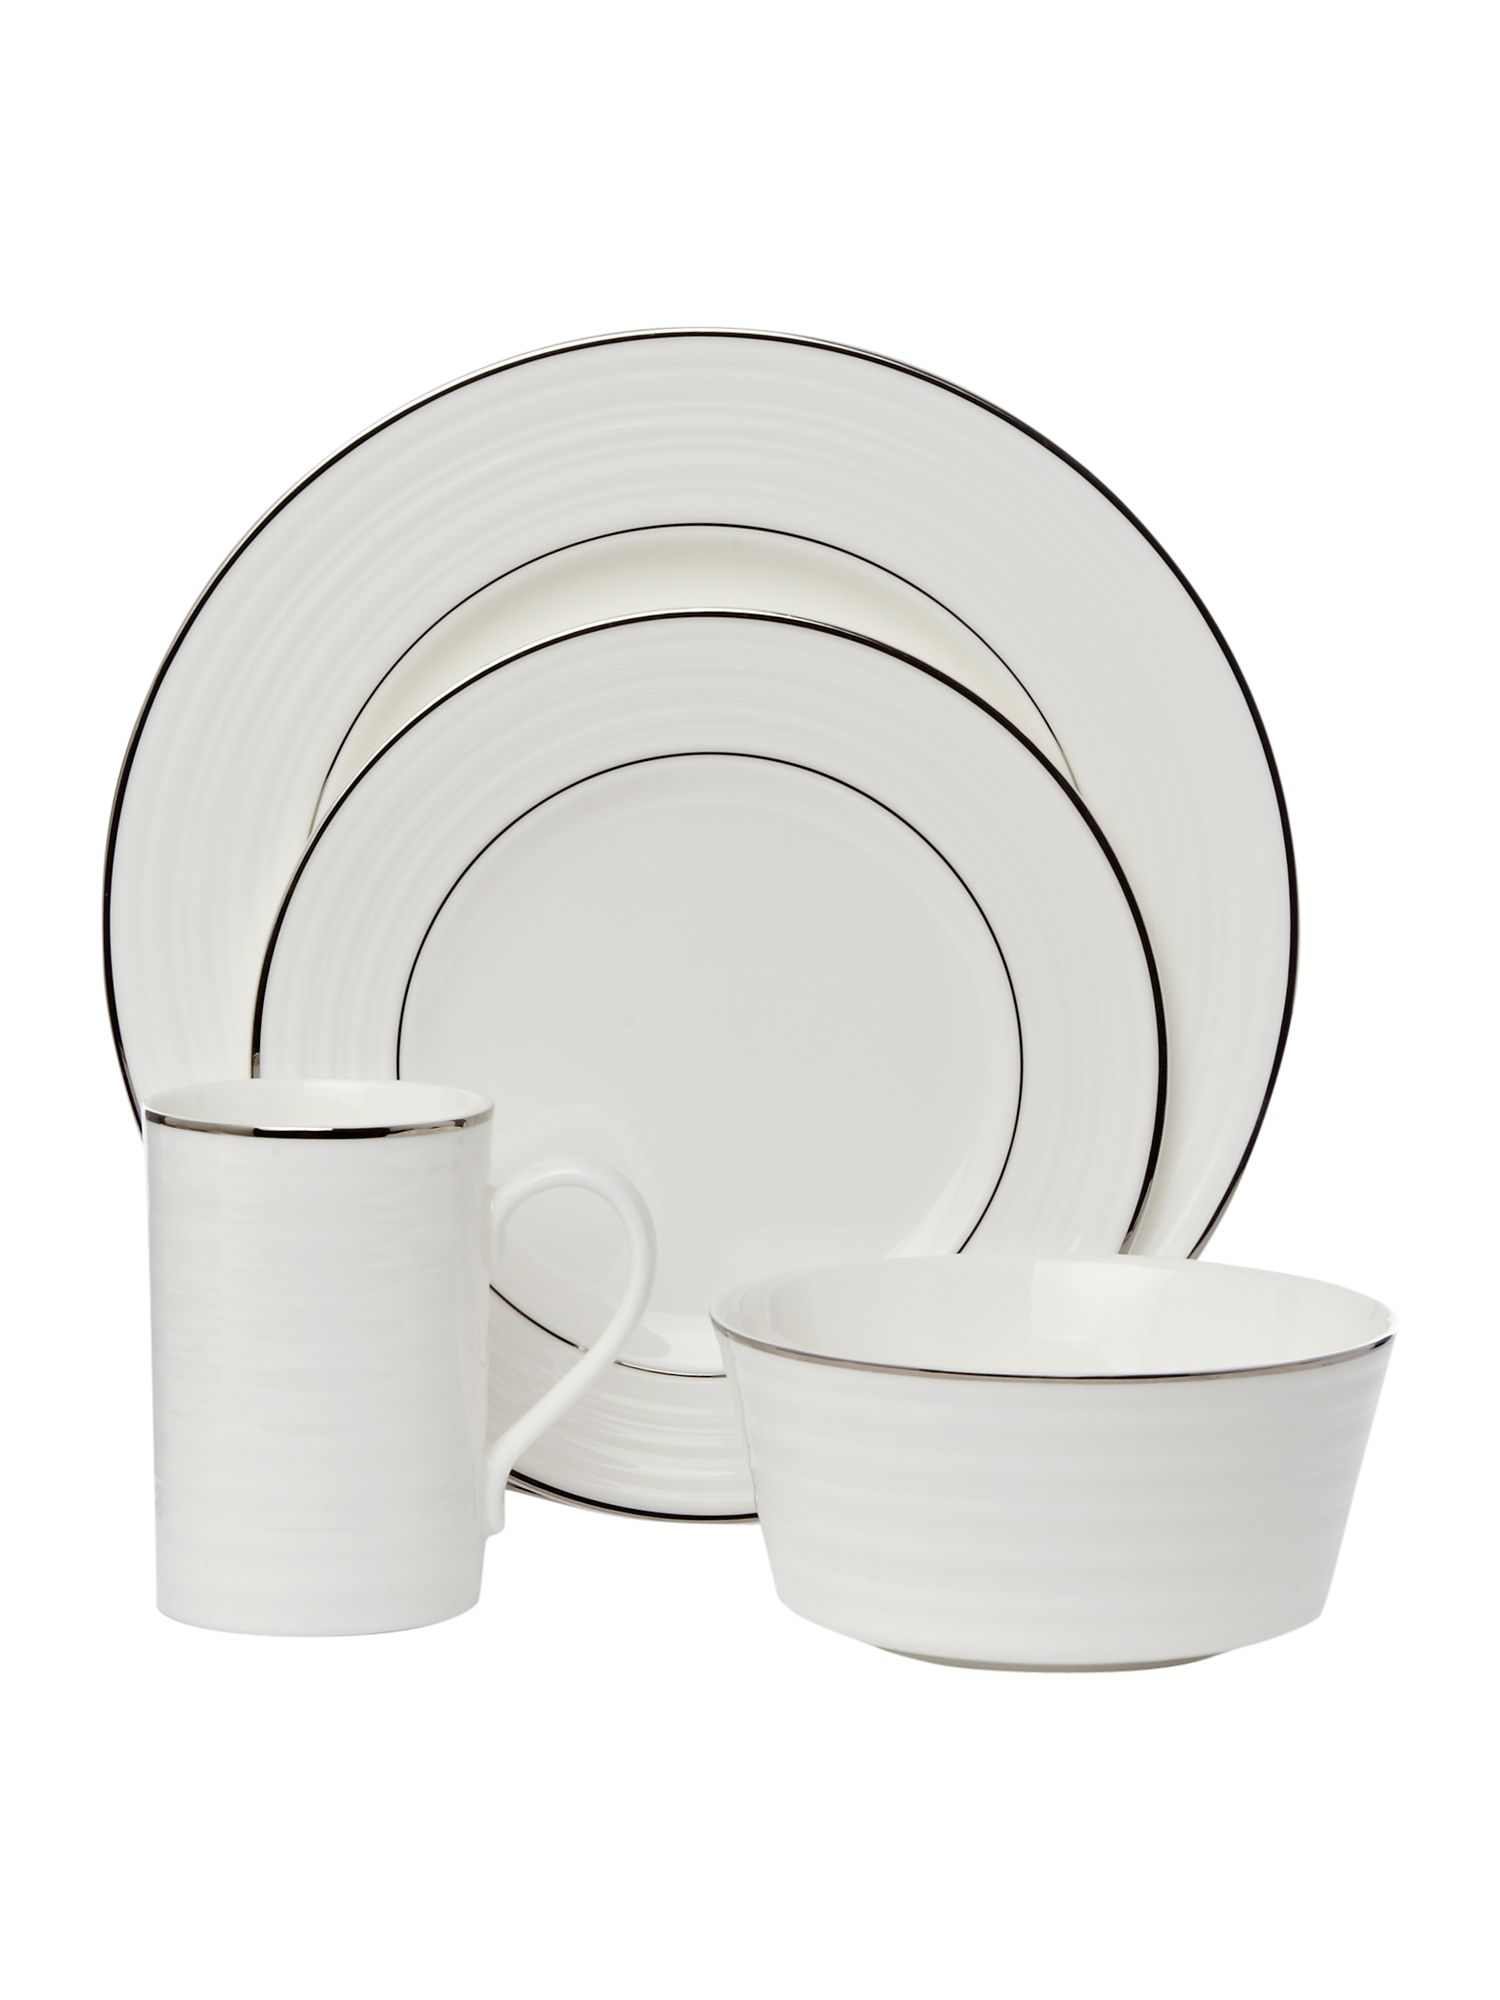 Soho Platinum Dinnerware